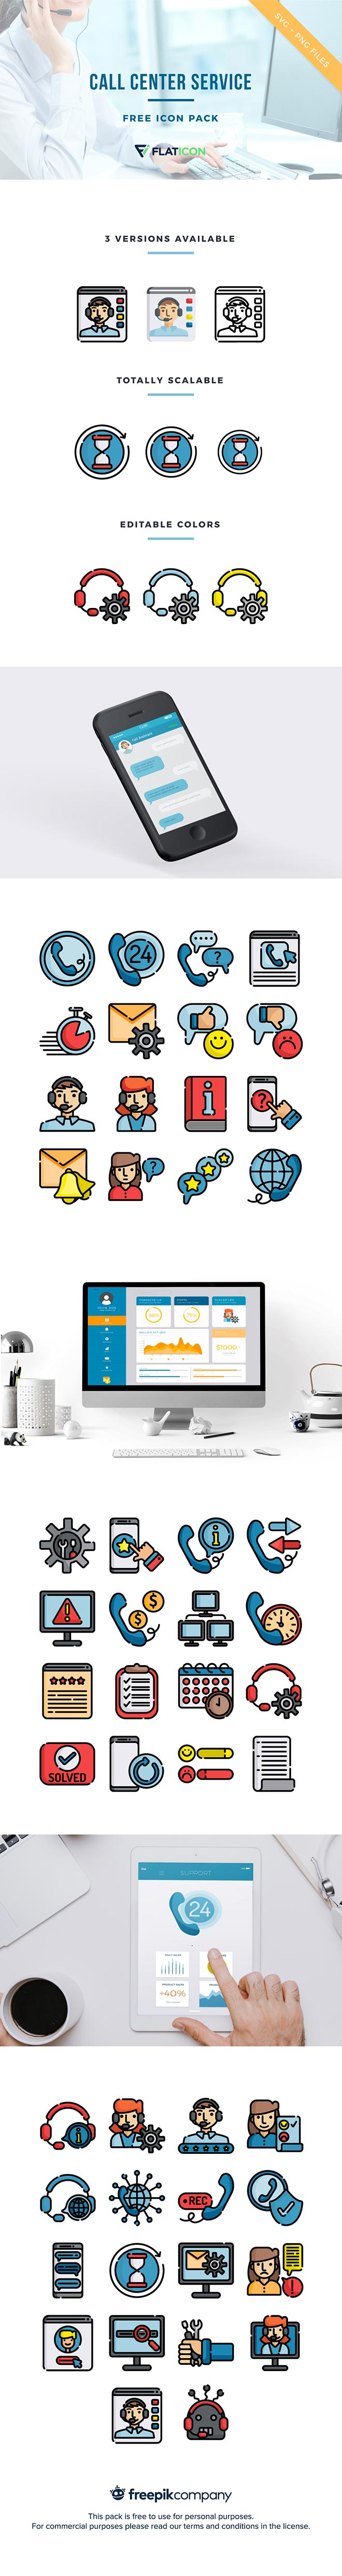 call center services - free icon pack